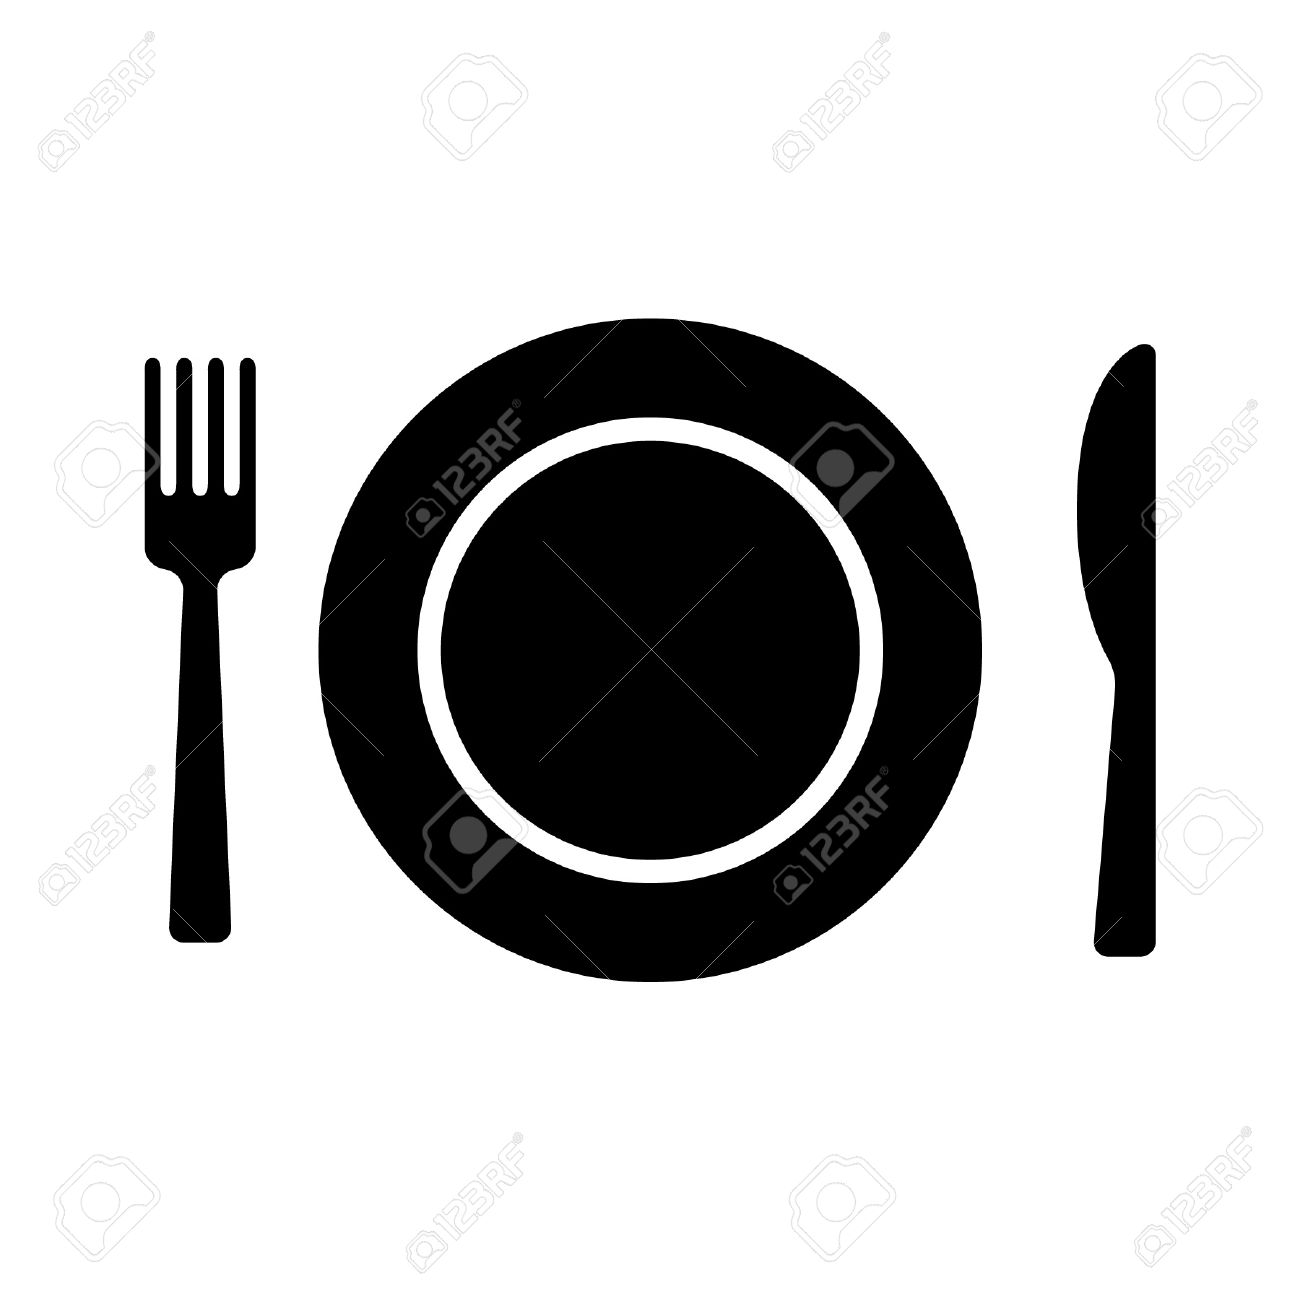 Dining flat icon with plate fork and knife for apps and websites Stock Vector -  sc 1 st  123RF.com & Dining Flat Icon With Plate Fork And Knife For Apps And Websites ...